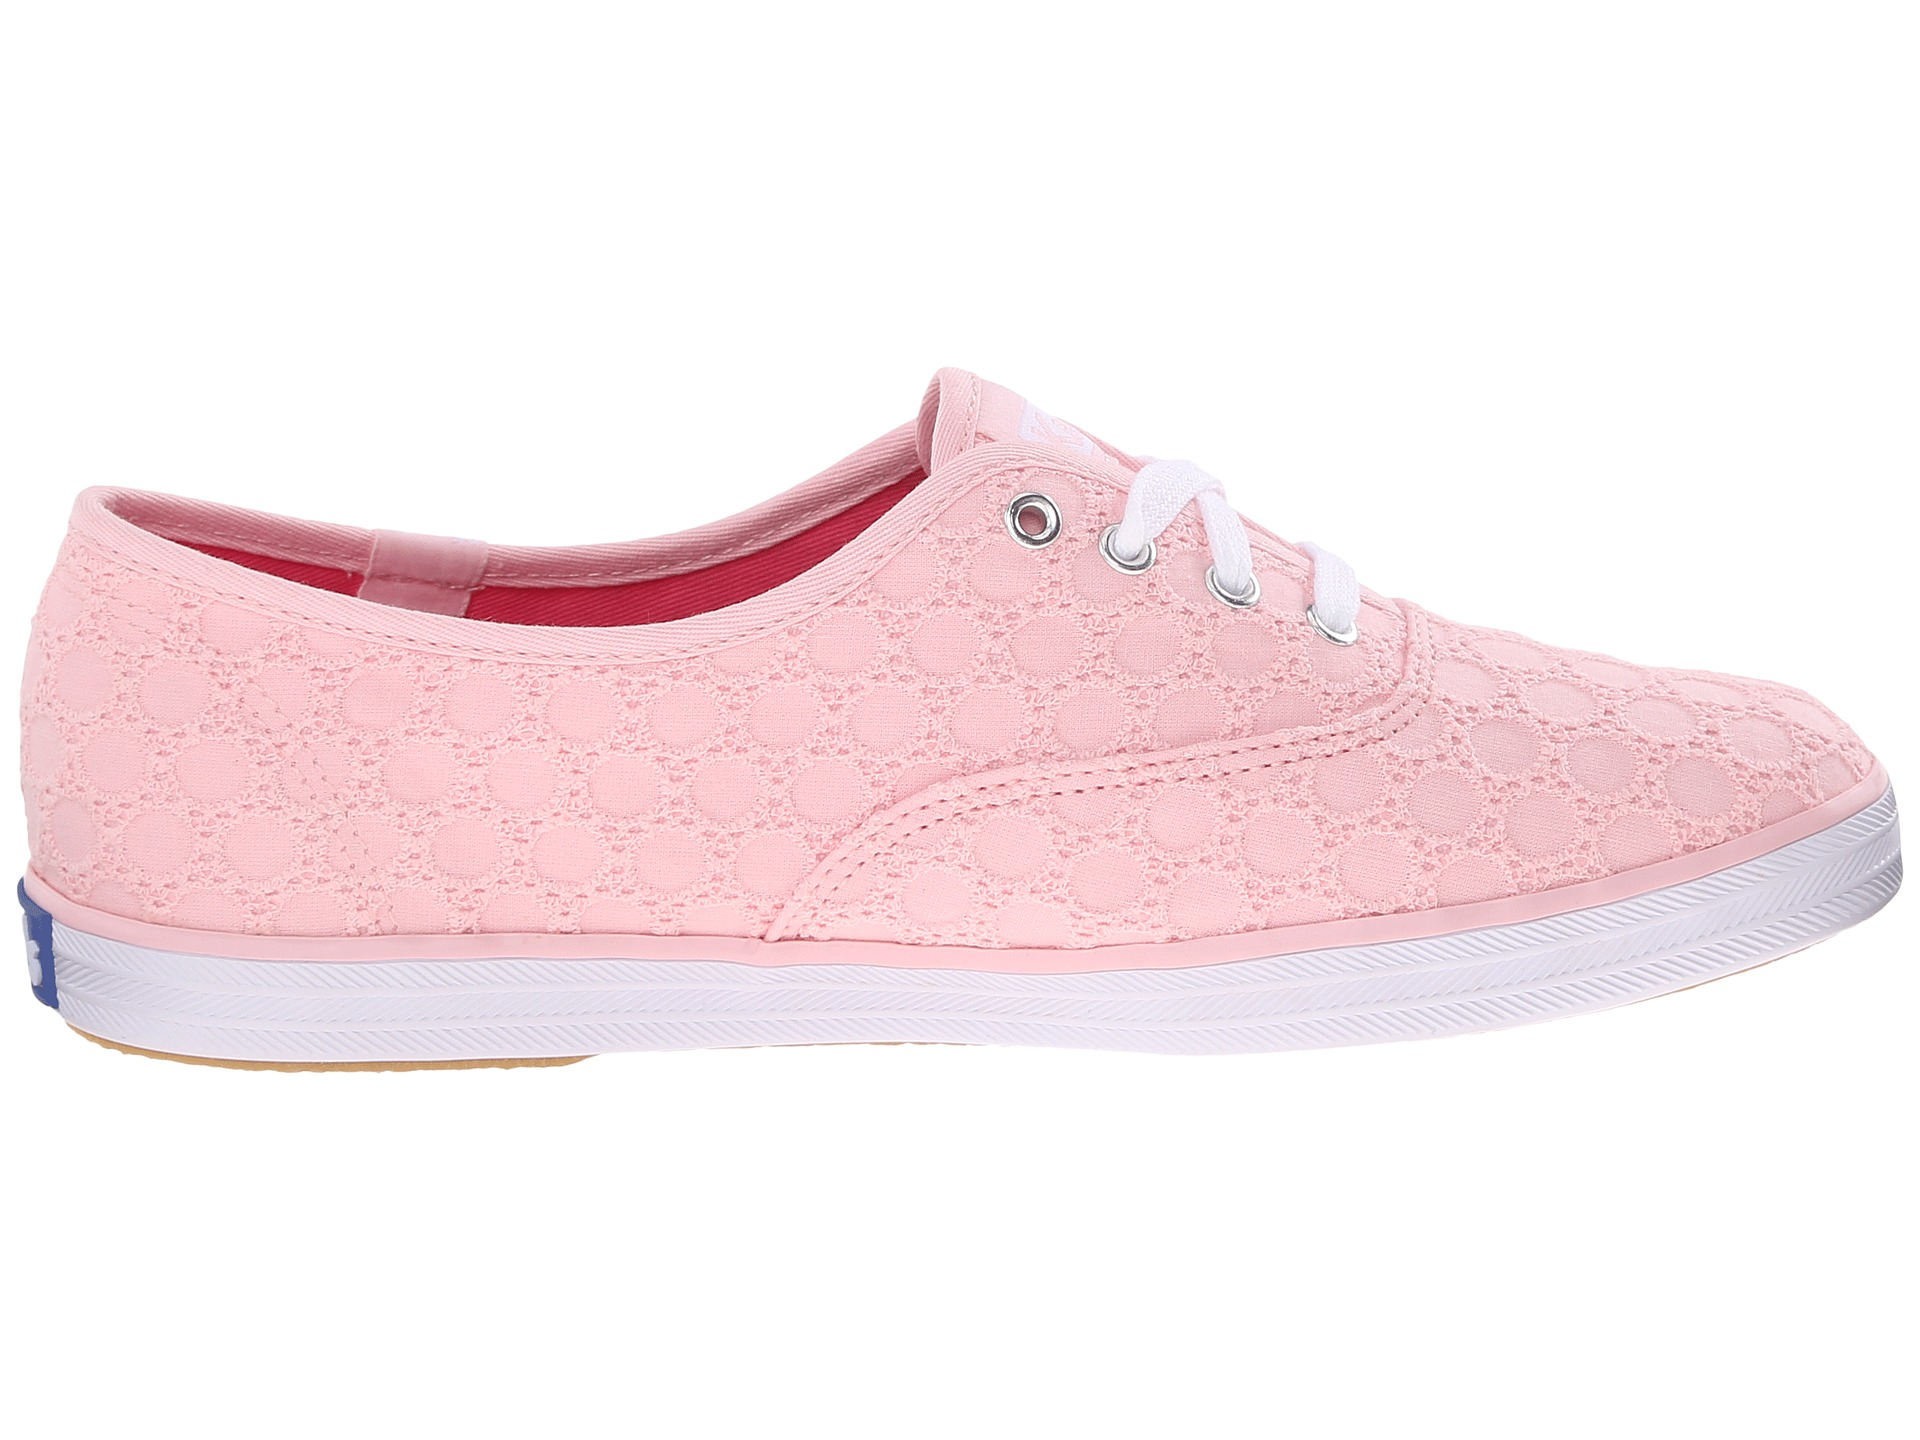 354b2667d2524 Lyst - Keds Champion Eyelet in Pink